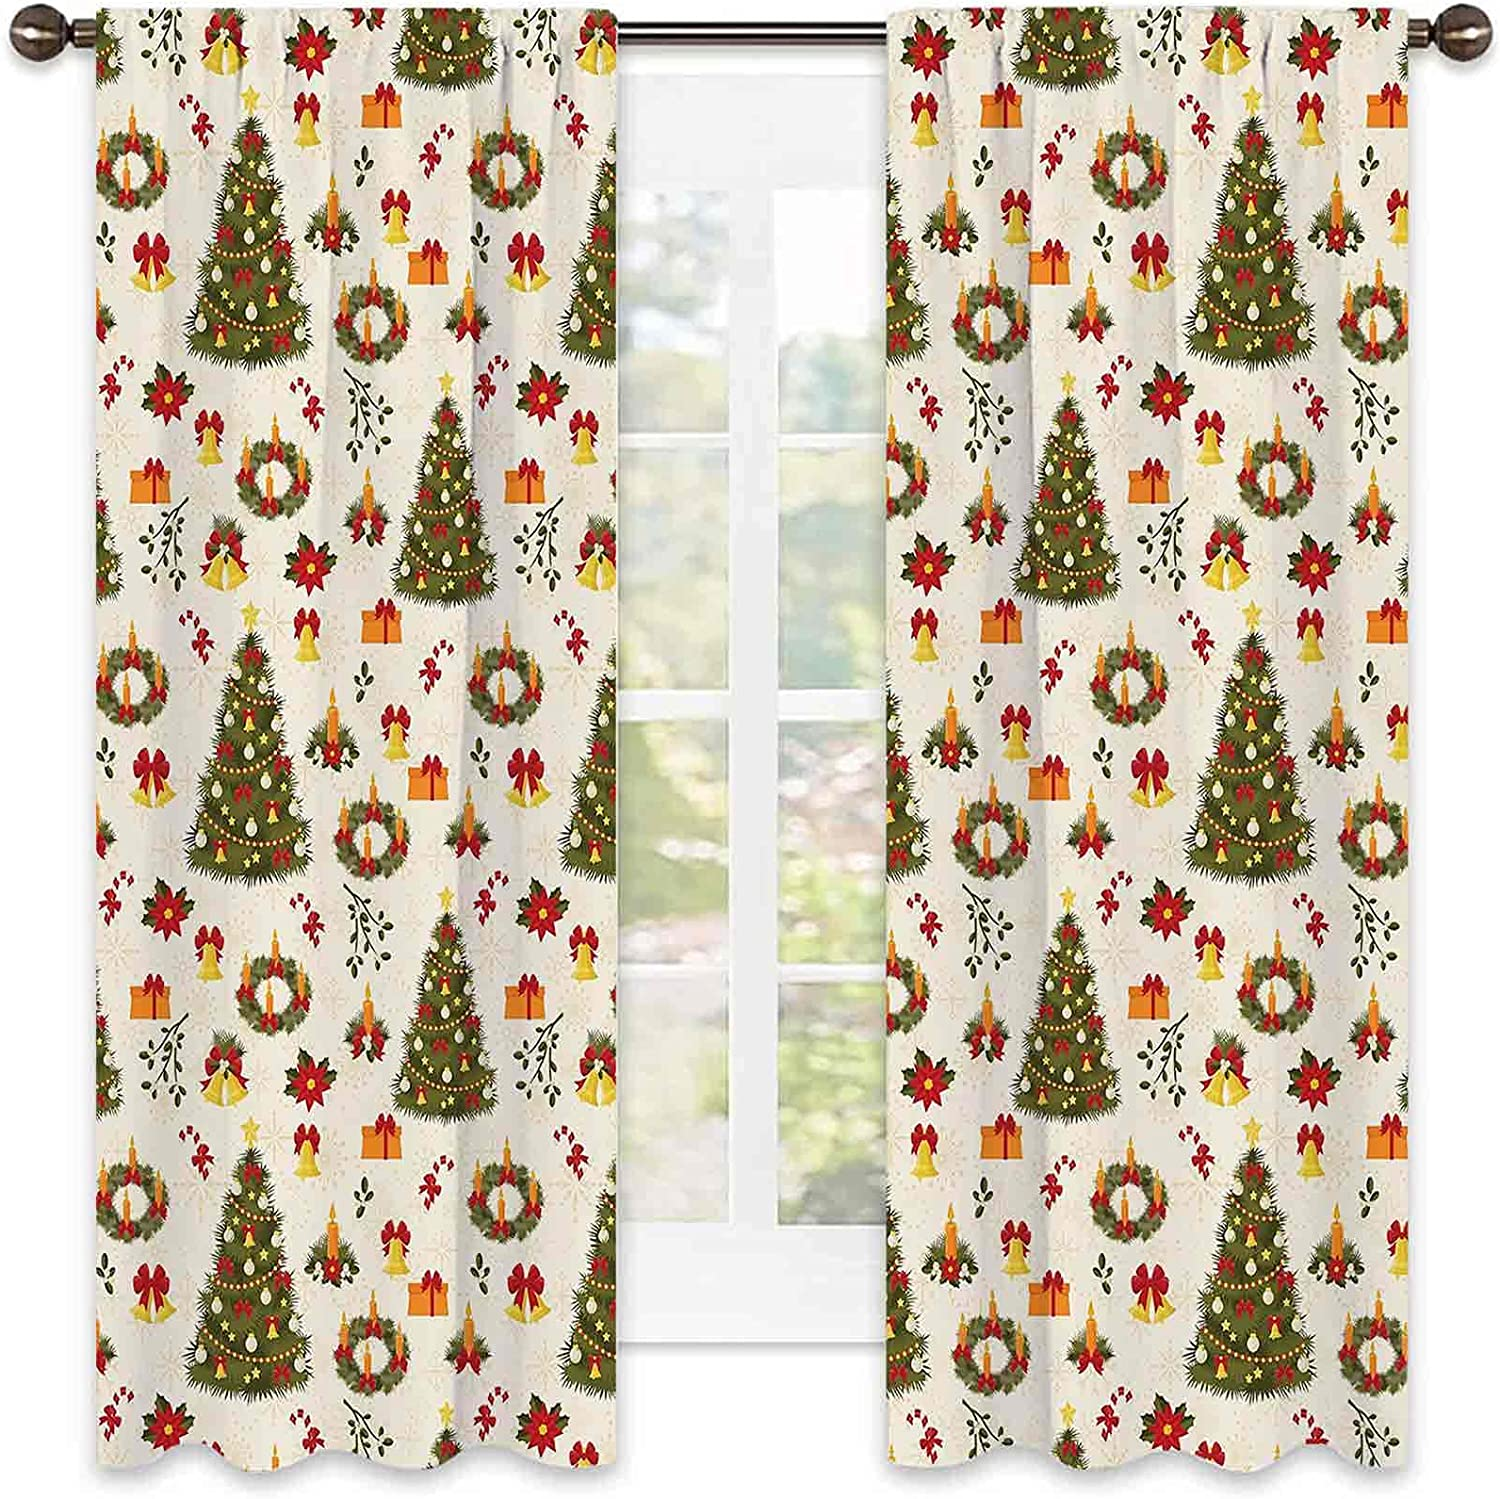 Daily bargain sale Tucson Mall Christmas Wear Resistant Color Curtain Tree Bel and Fir Garland